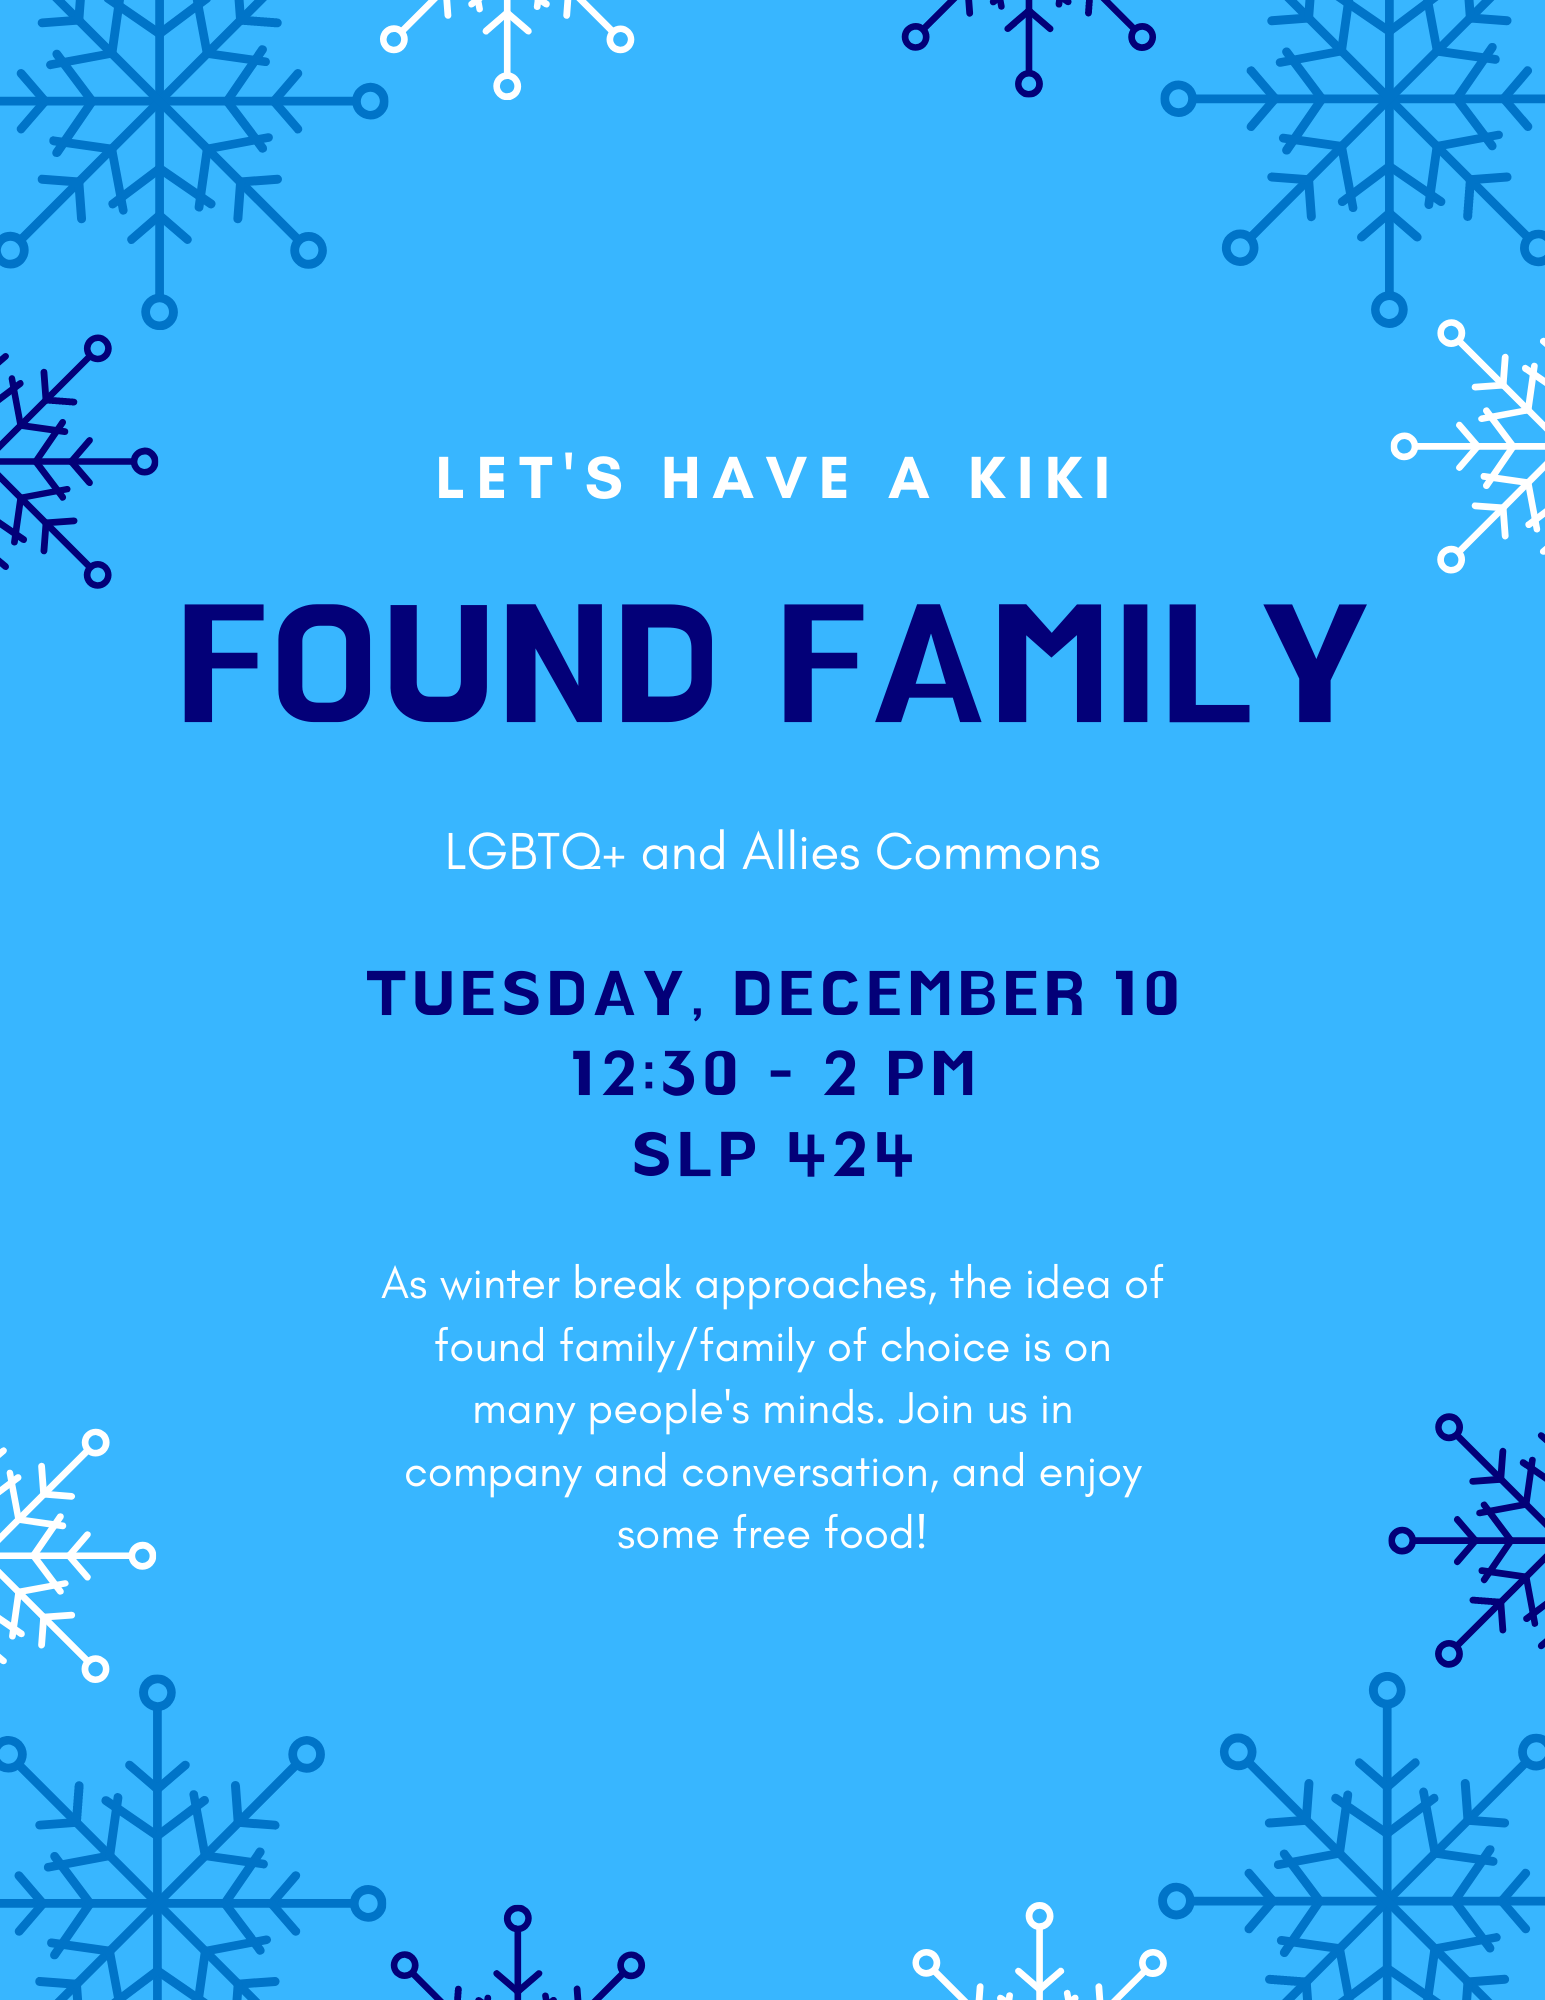 Let's Have A Kiki: Found Family flyer. December 10 from 12:30 - 2 in SLP 424.